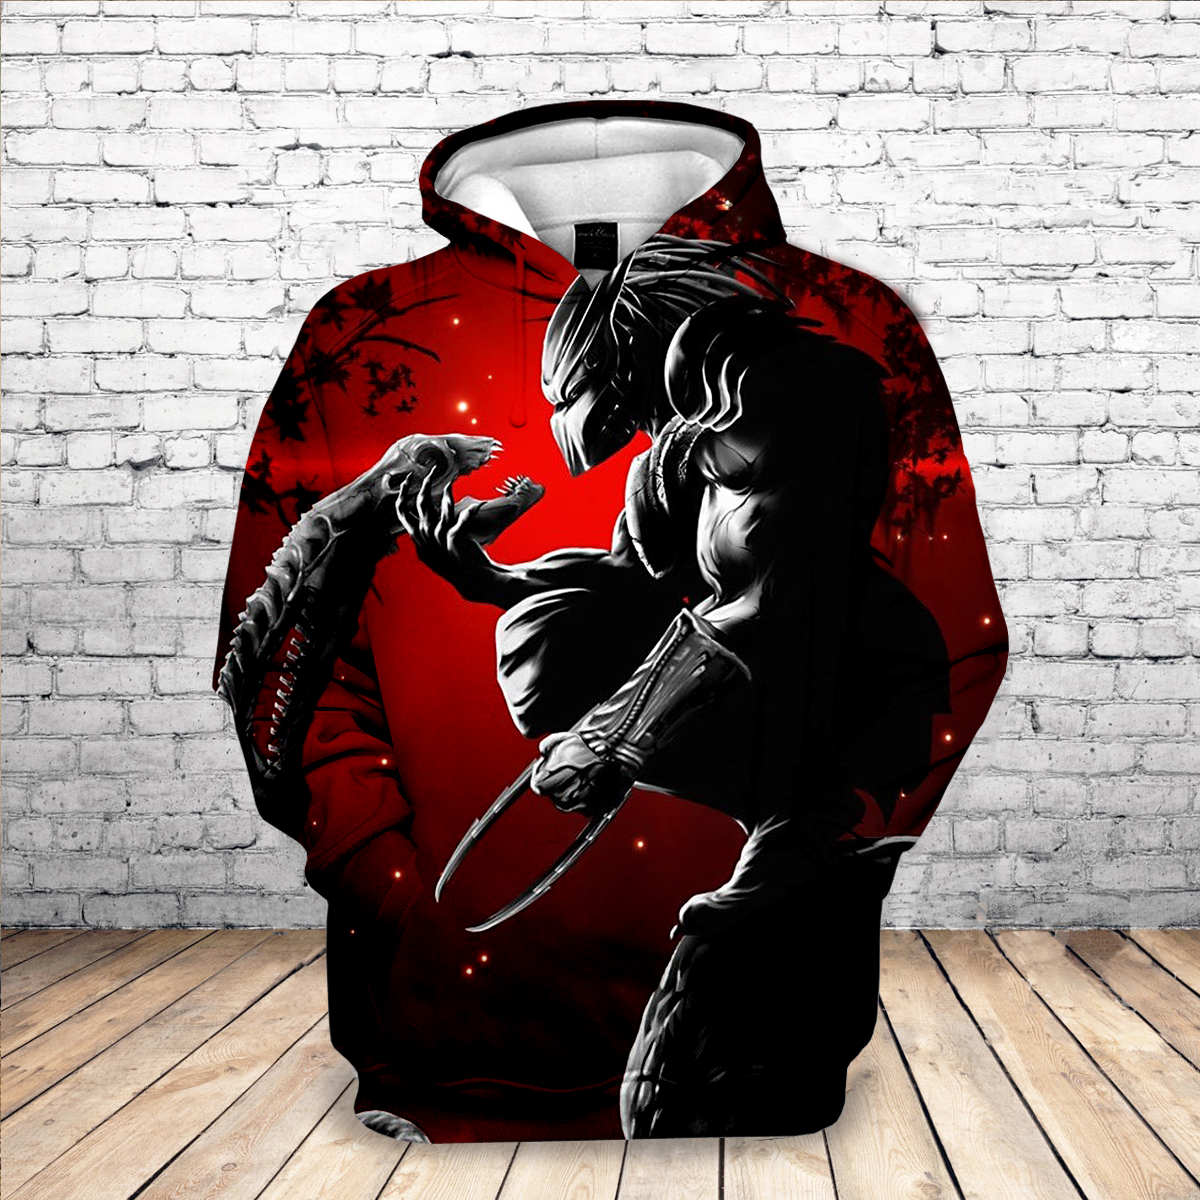 2019 New Sweatshirt Customize Horror Predator 3D Printed Hoodies Unique Pullovers Tops Men Clothing Drop Shipping